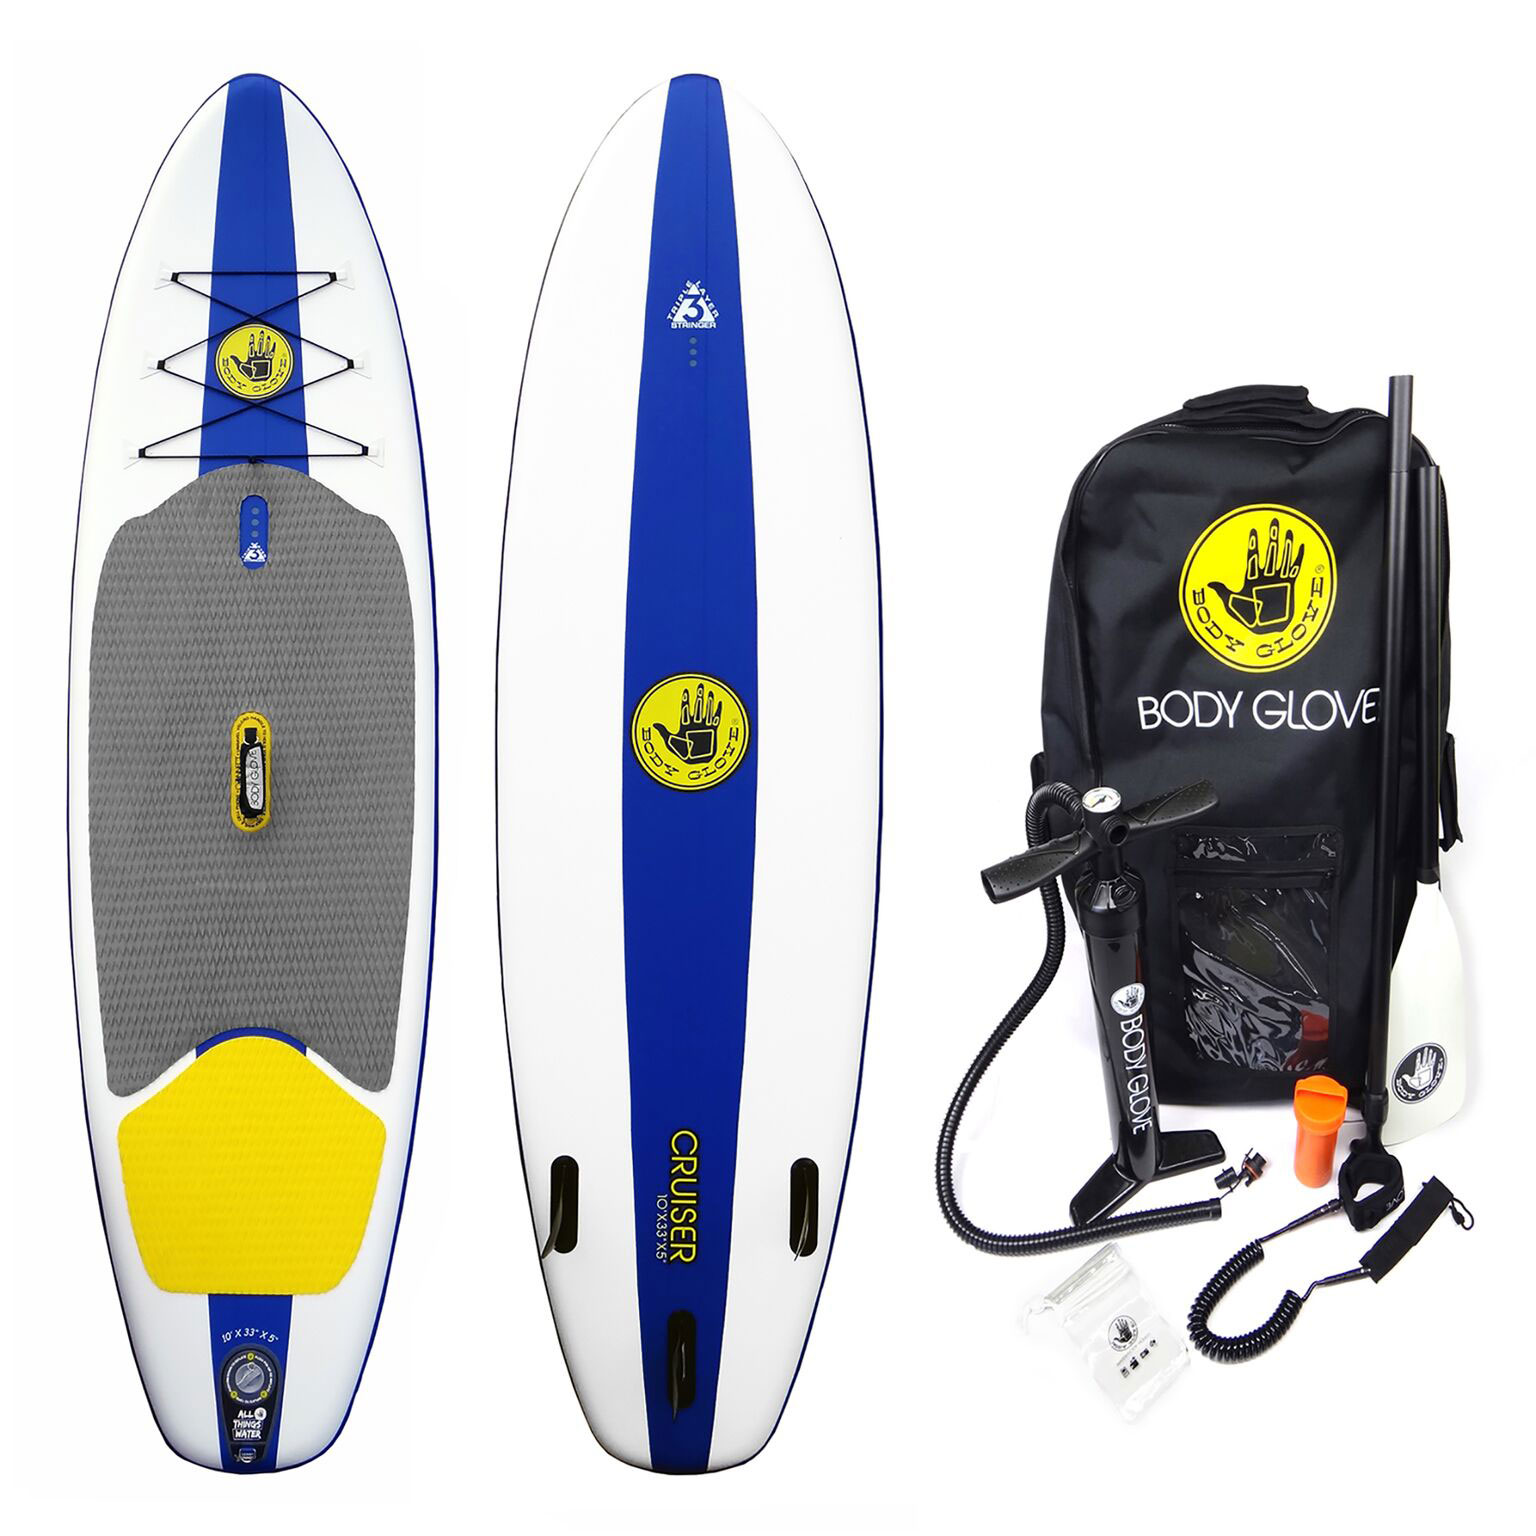 Body Glove Cruiser Inflatable Blow Up Stand Up SUP 10 Foot Surf Paddleboard